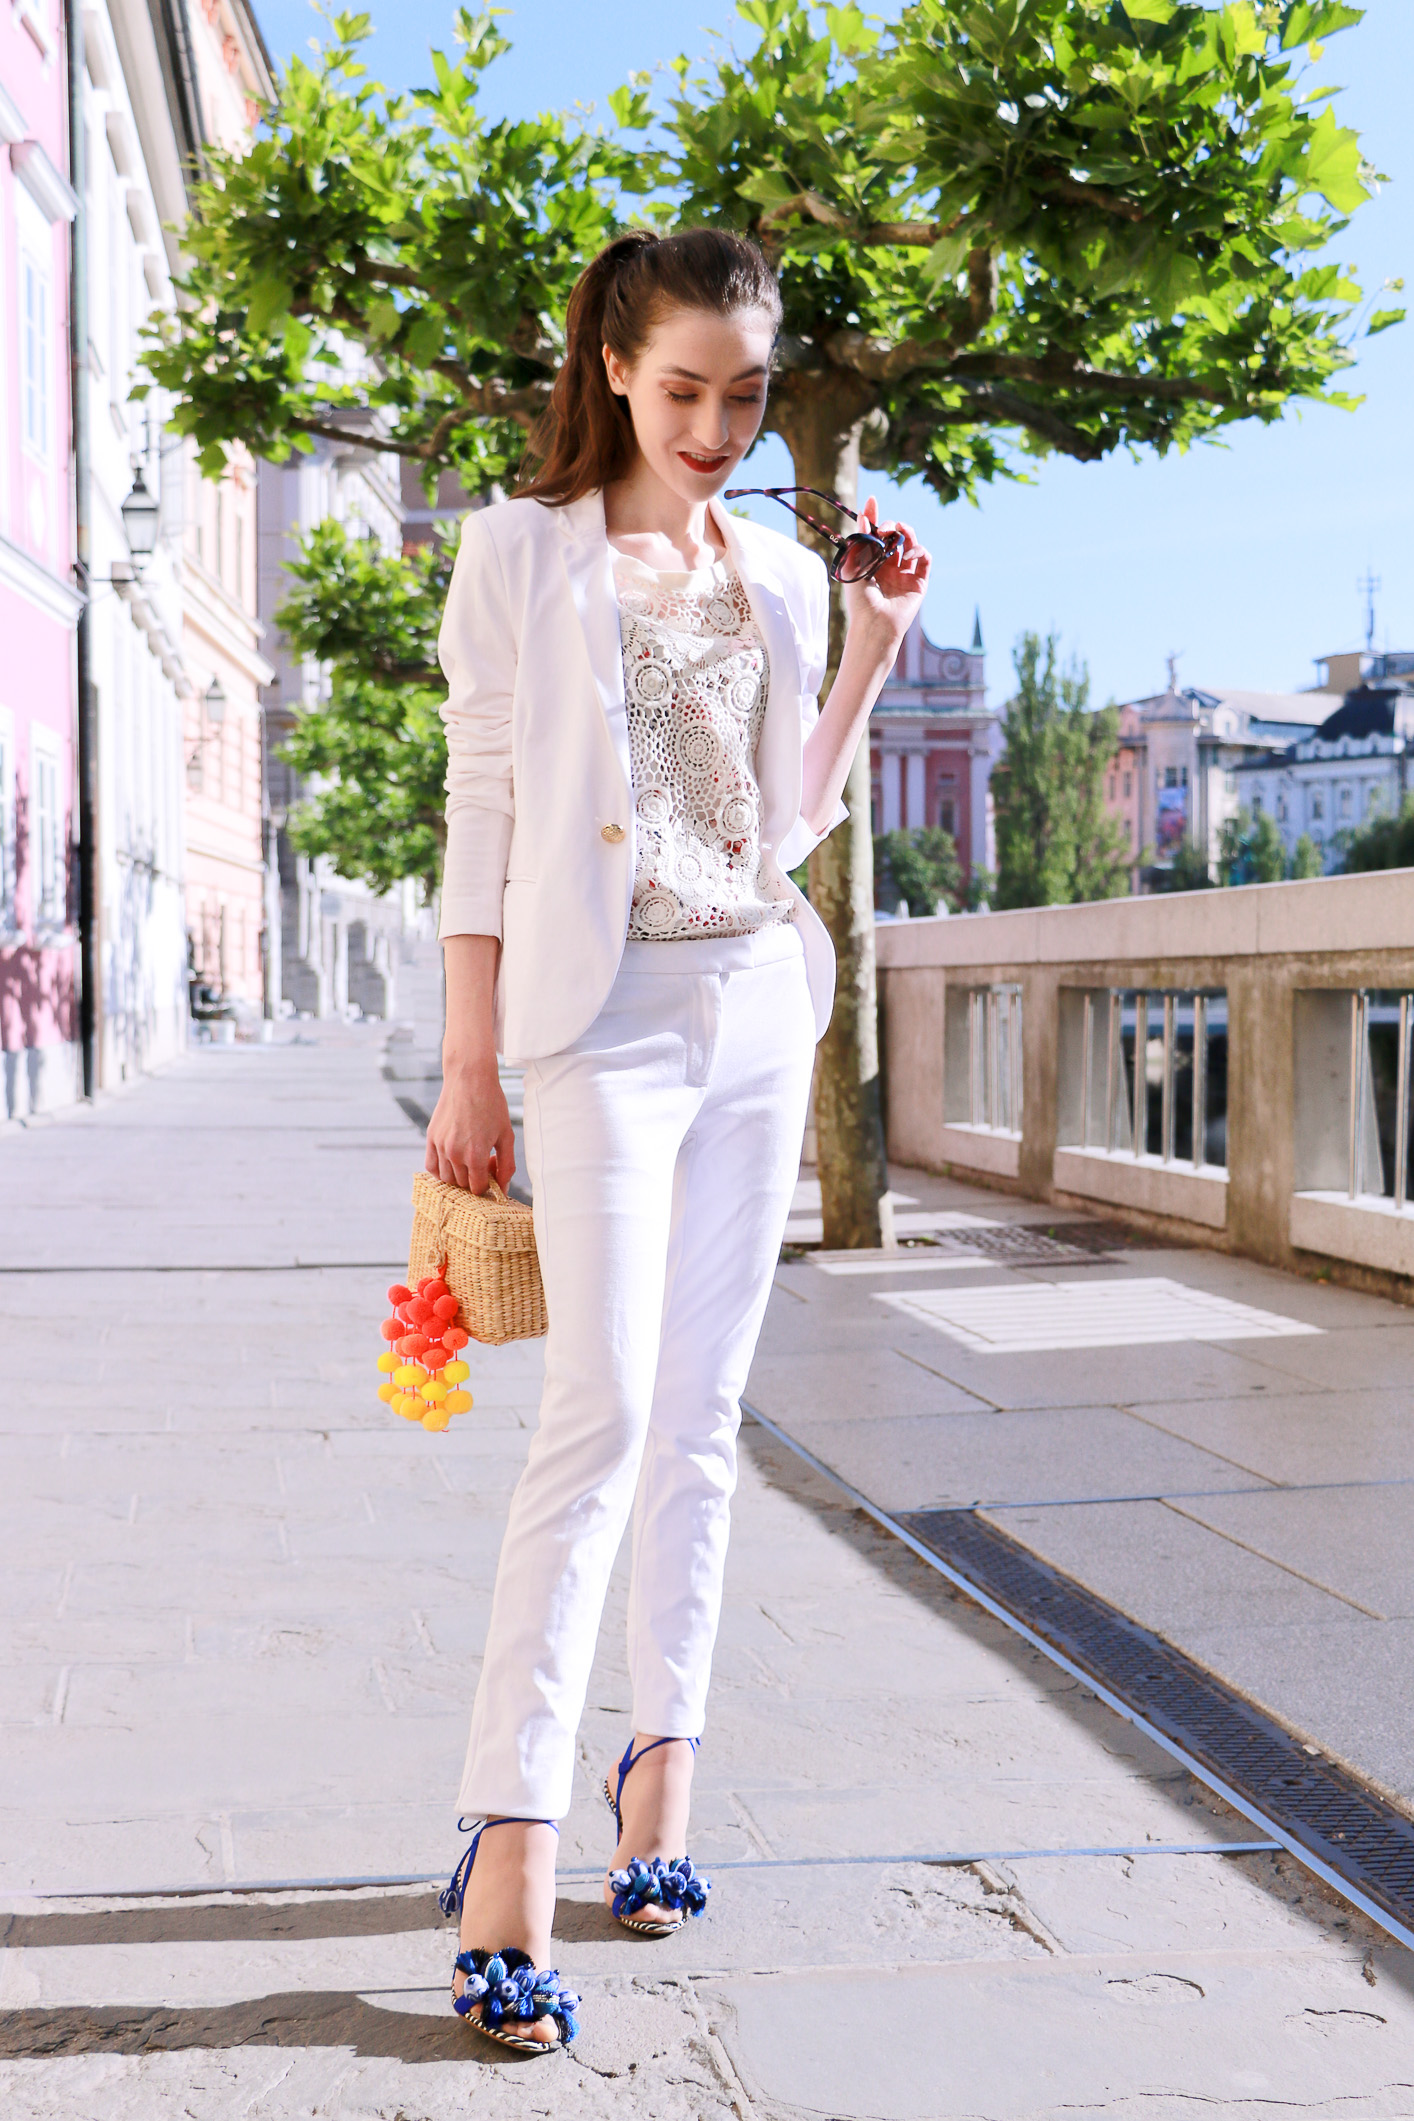 Fashion blogger Veronika Lipar of Brunette From Wall Street in white suit and tasselled sandals